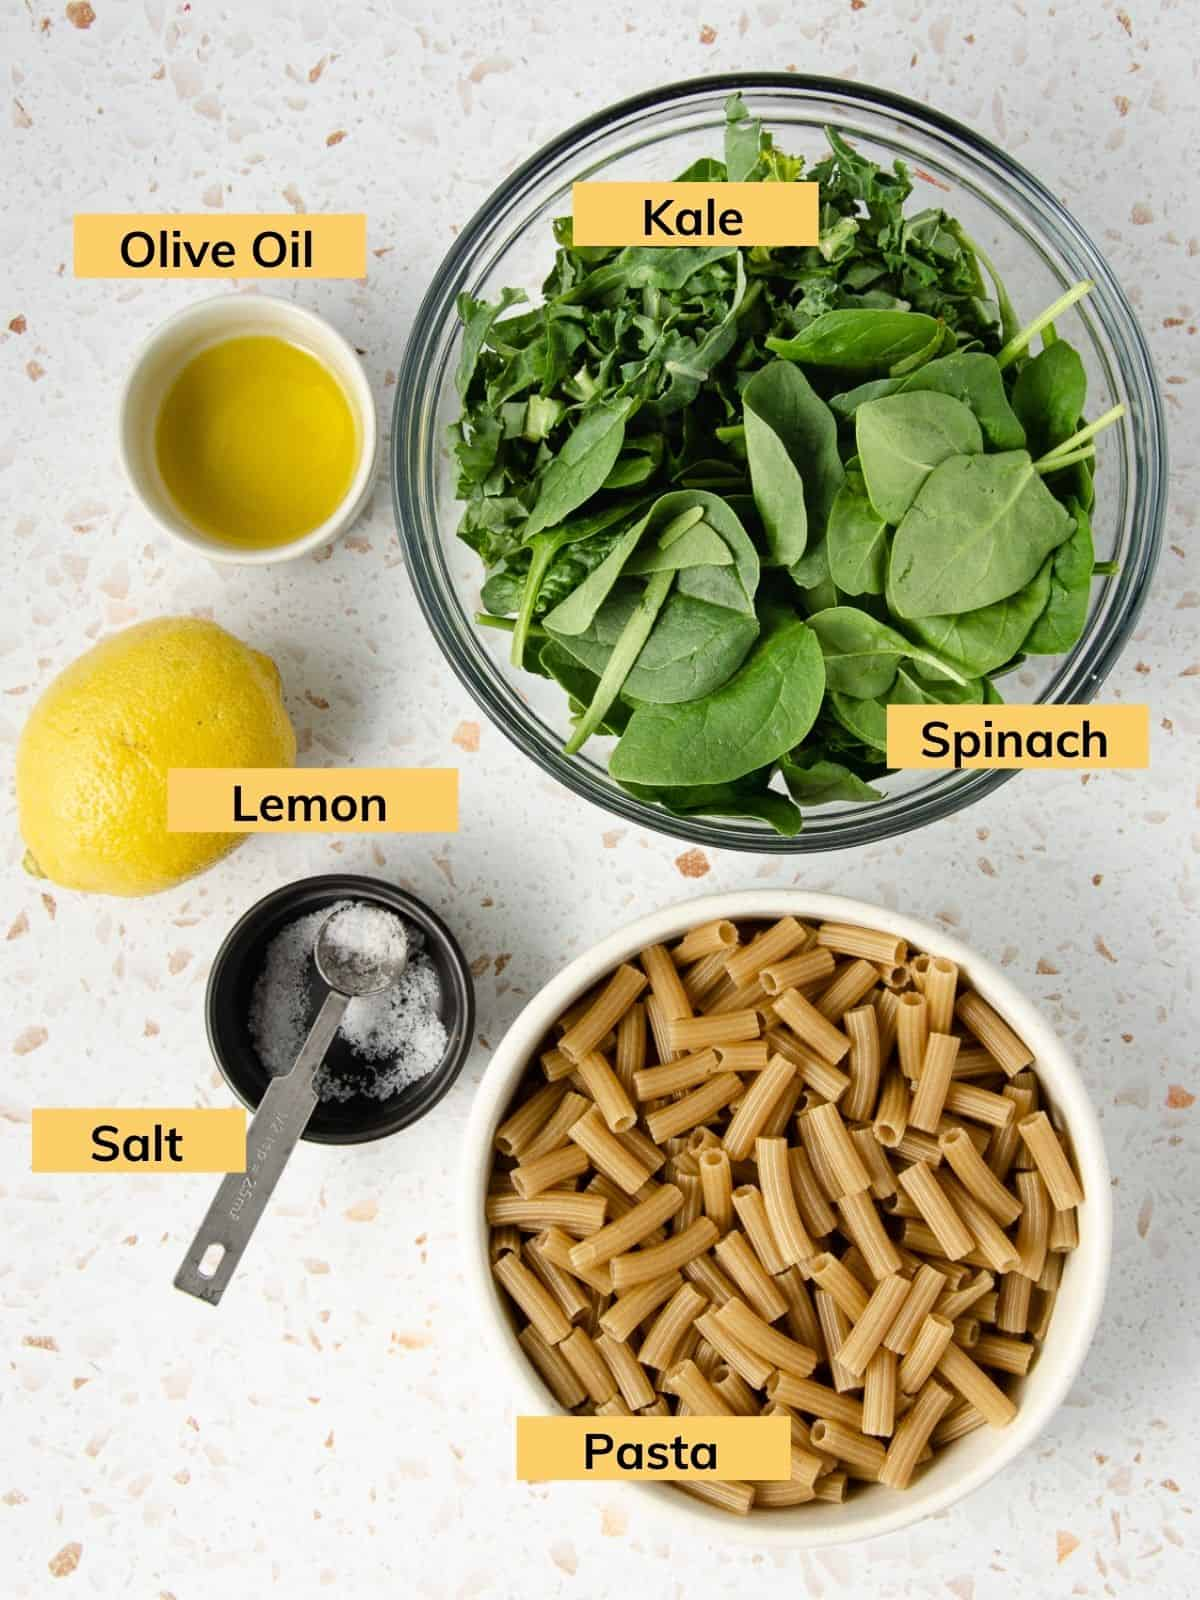 Ingredients for a green pasta sauce in bowls.